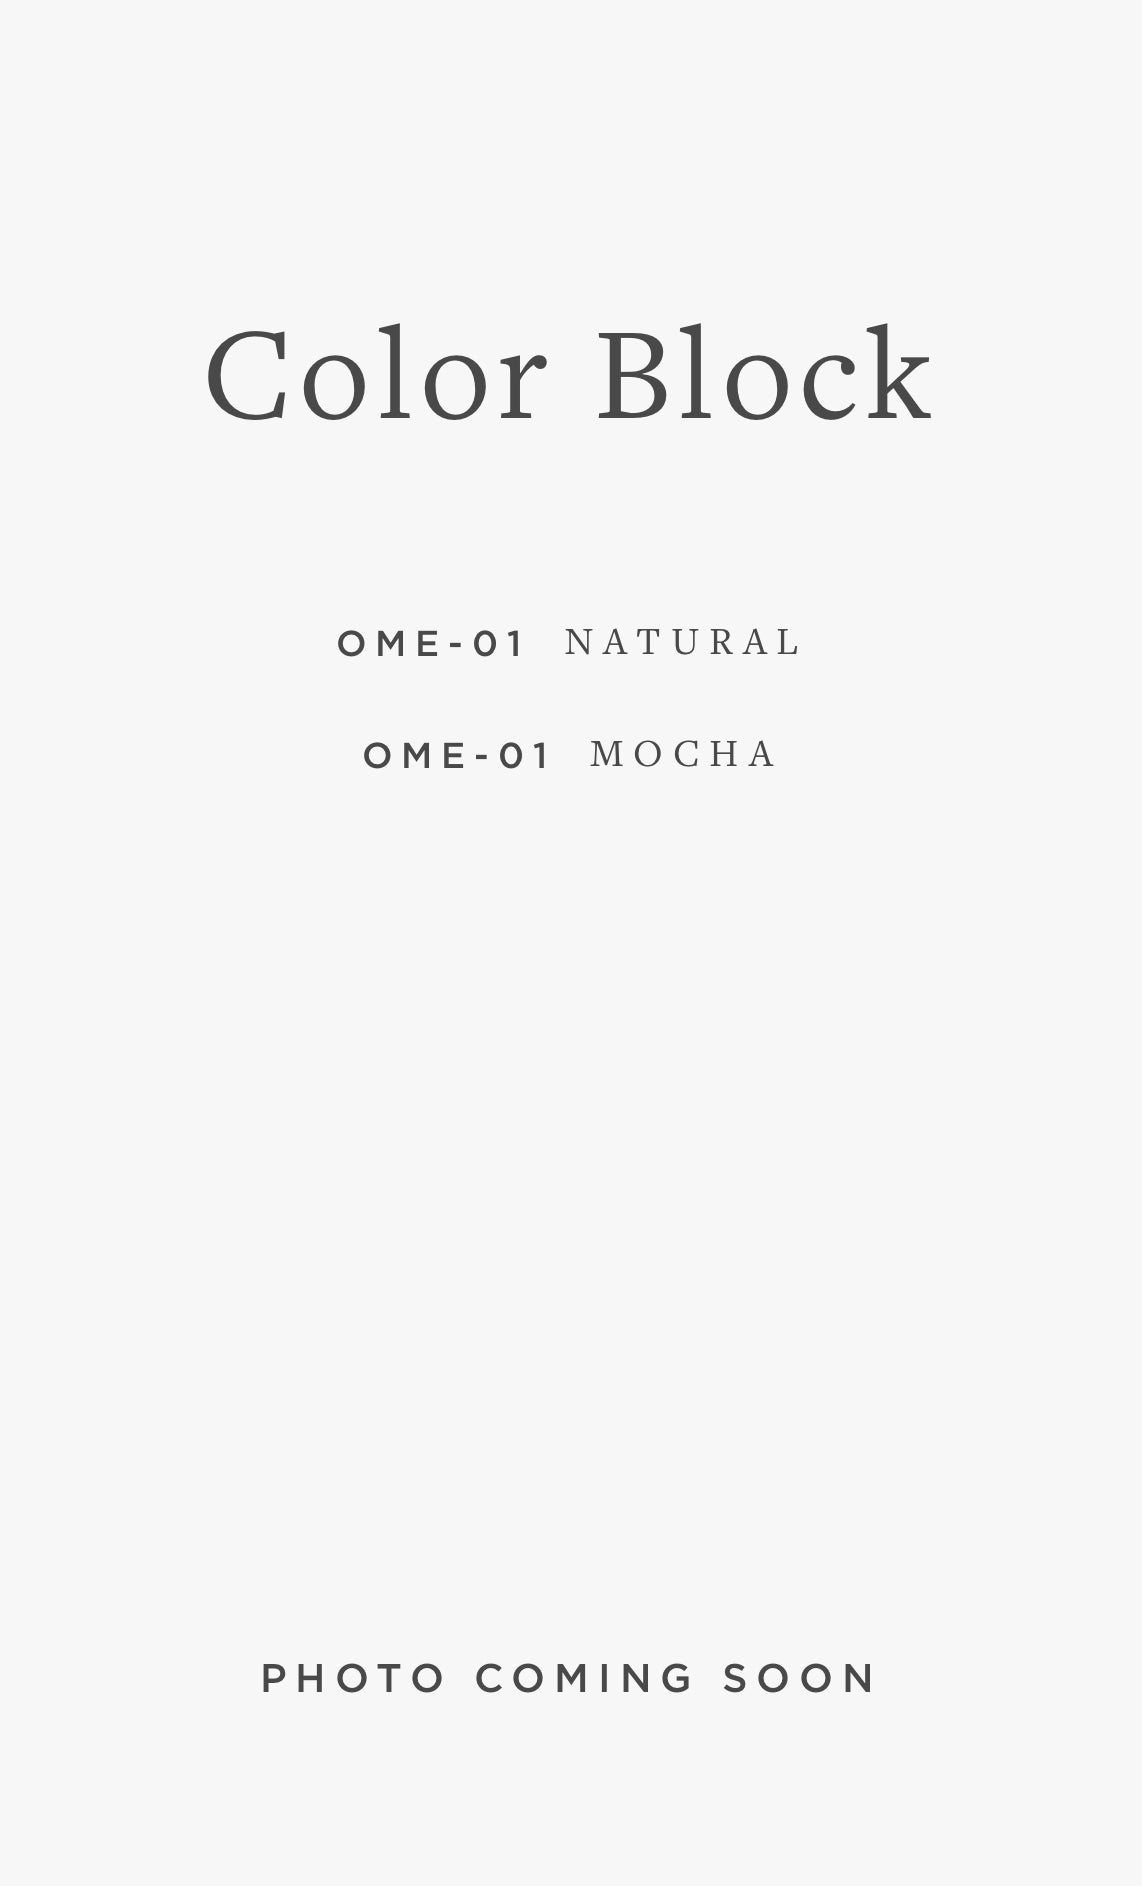 OME-01 COLOR BLOCK / 02